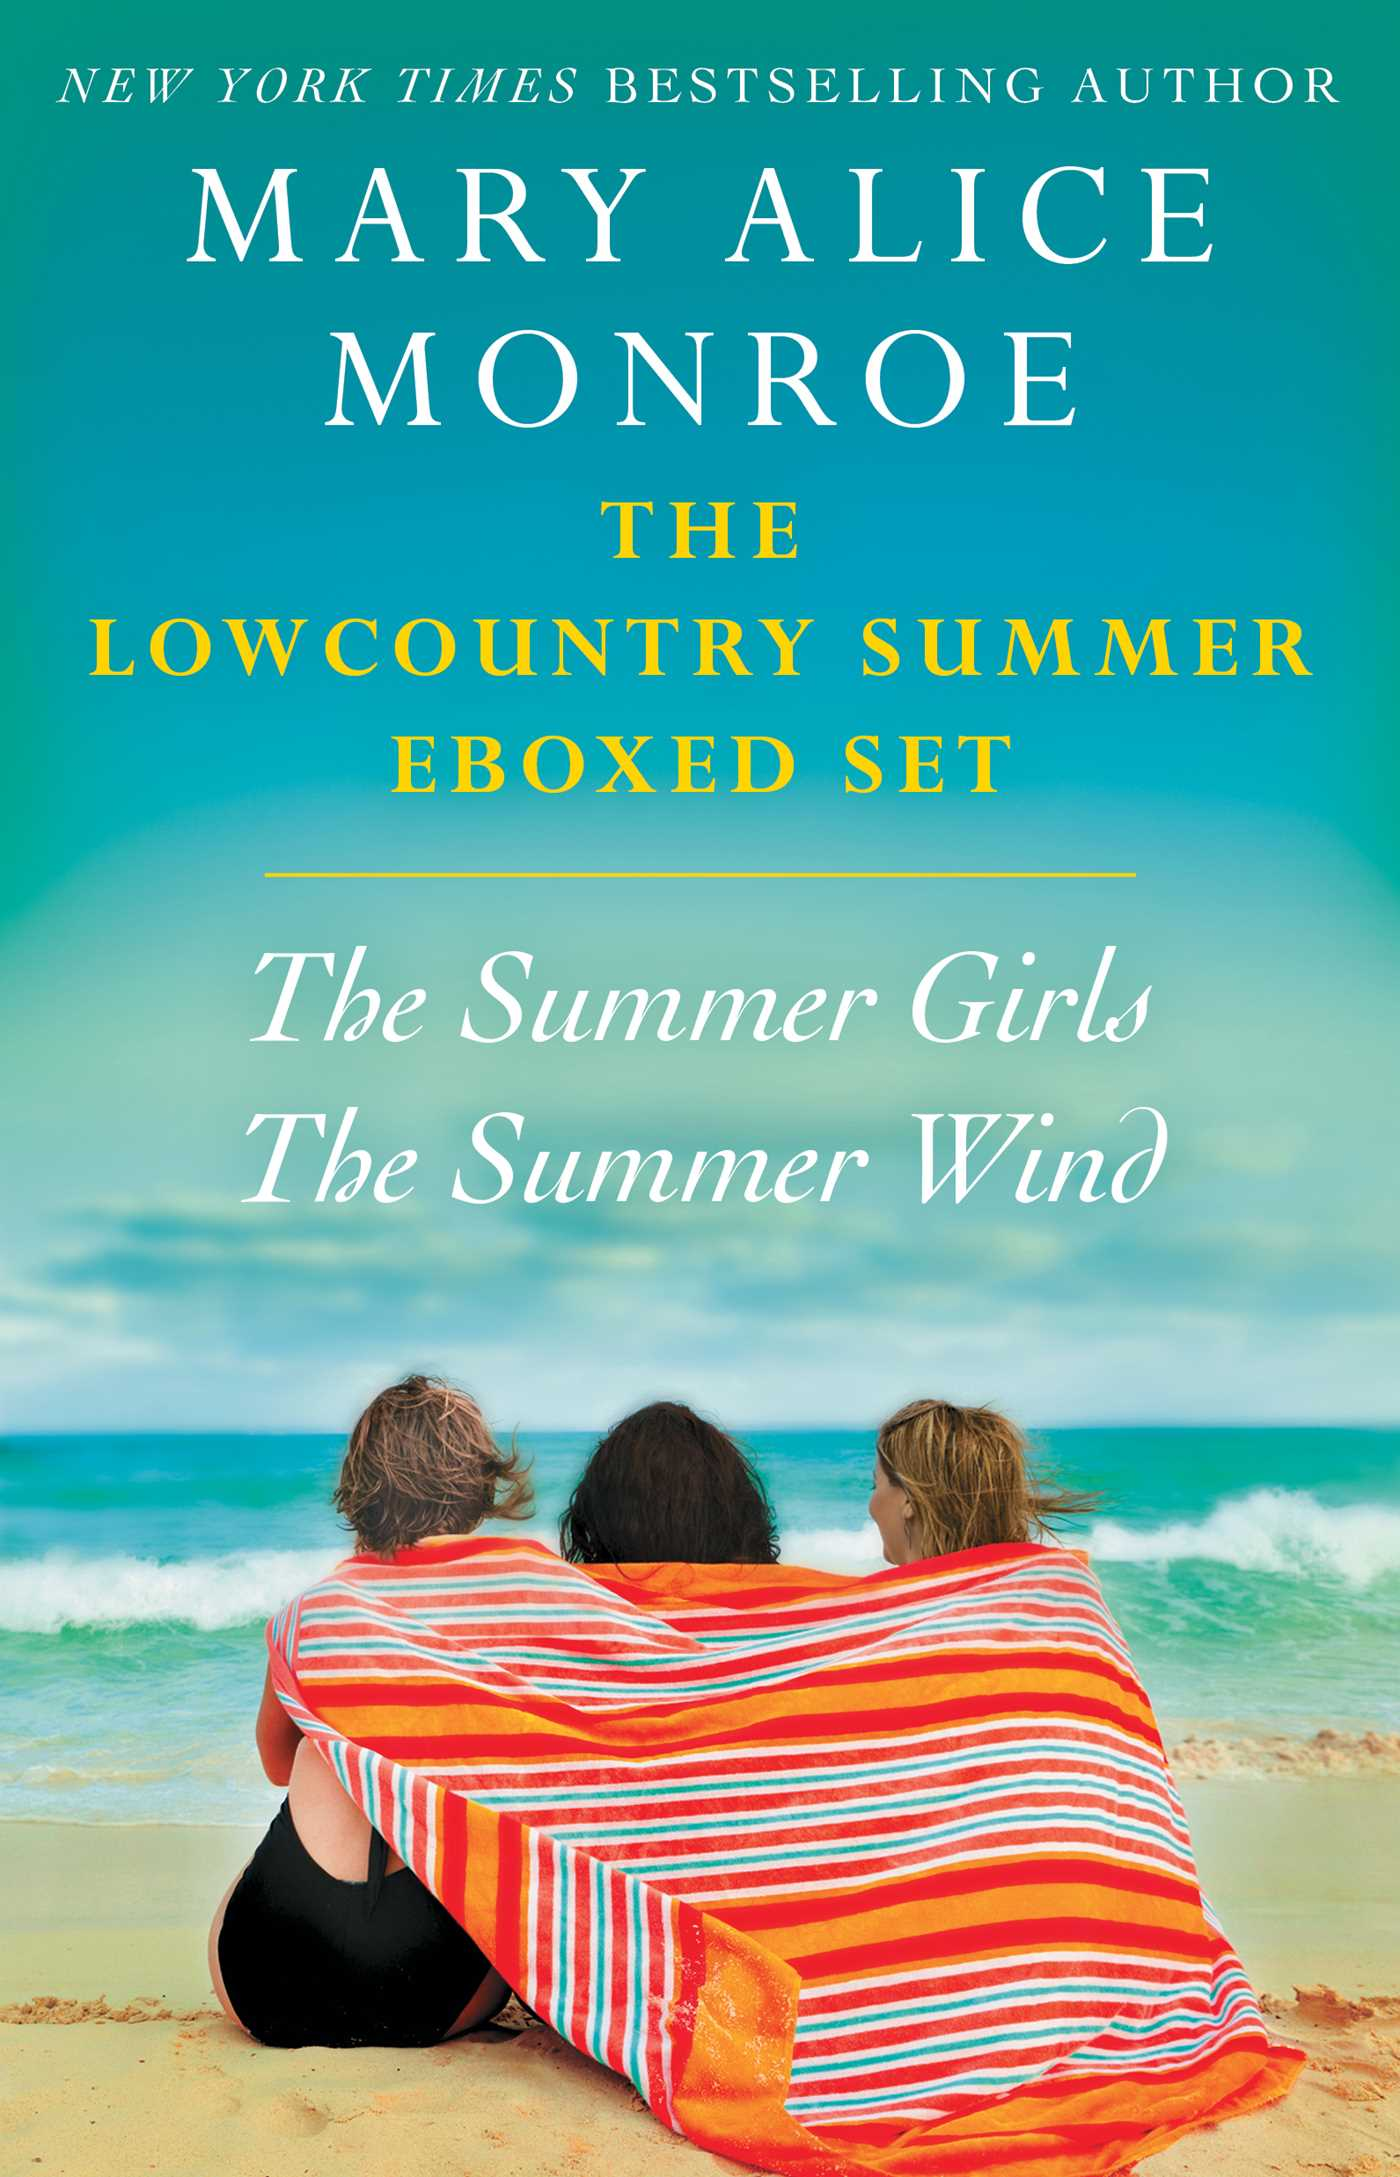 The lowcountry summer eboxed set 9781501115882 hr